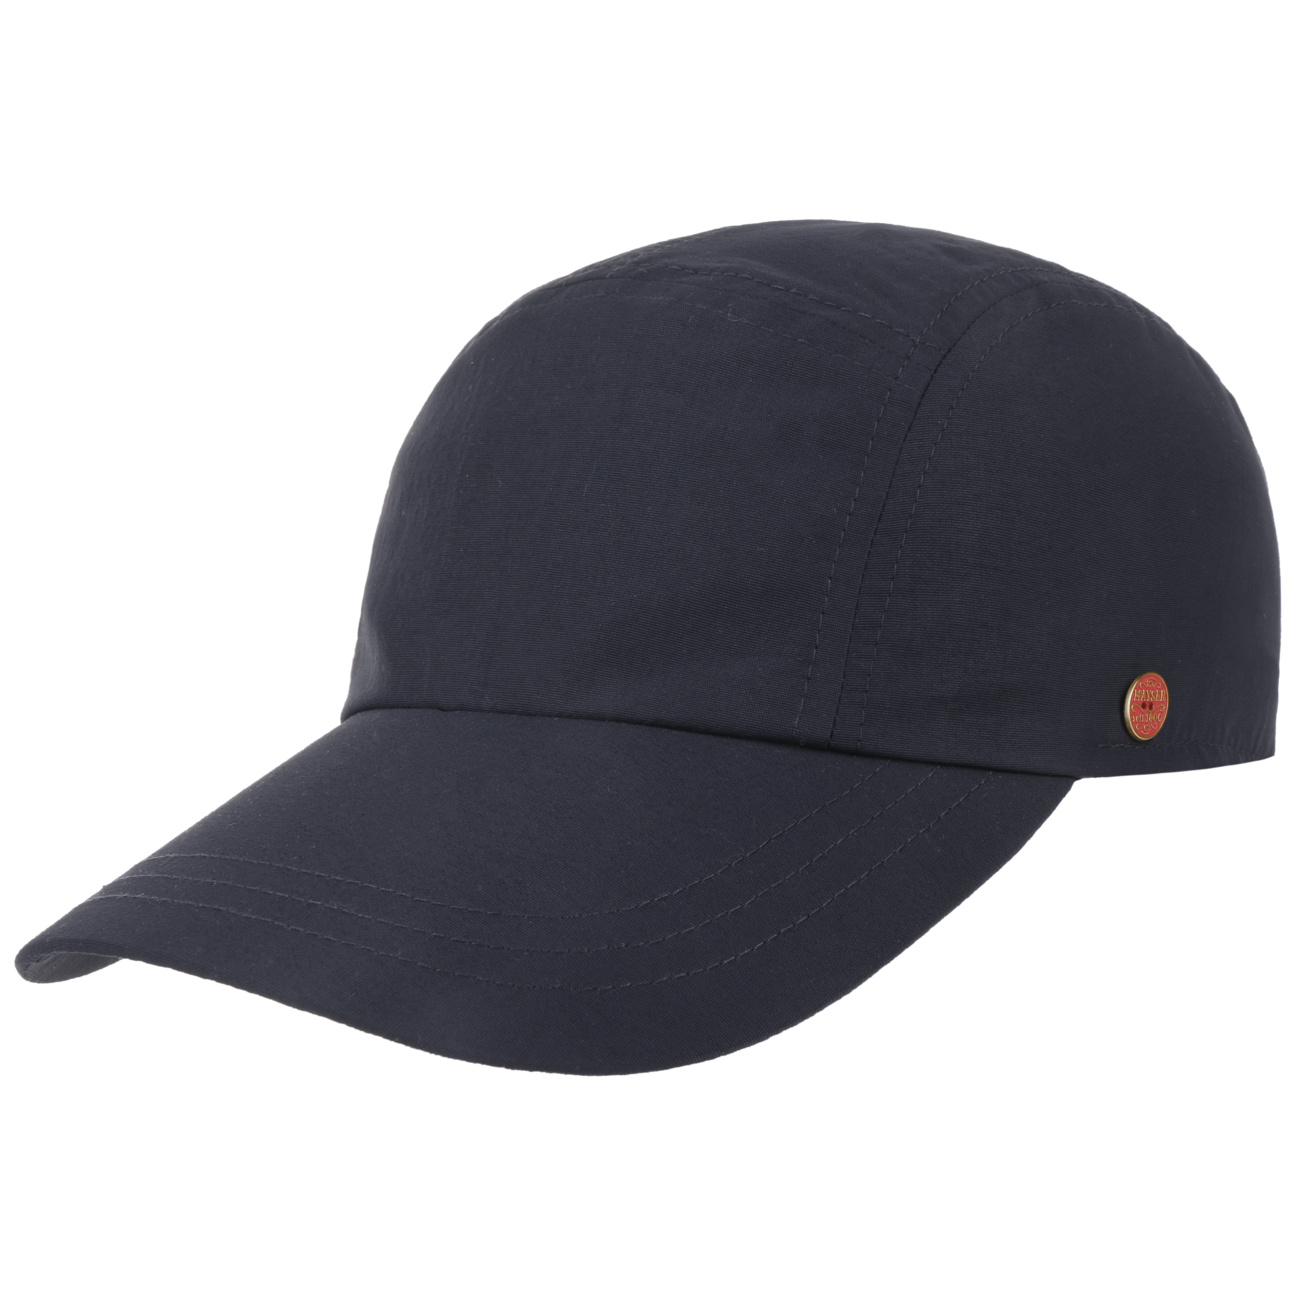 Casquette Riccardo Sunblocker by Mayser  casquette fitted